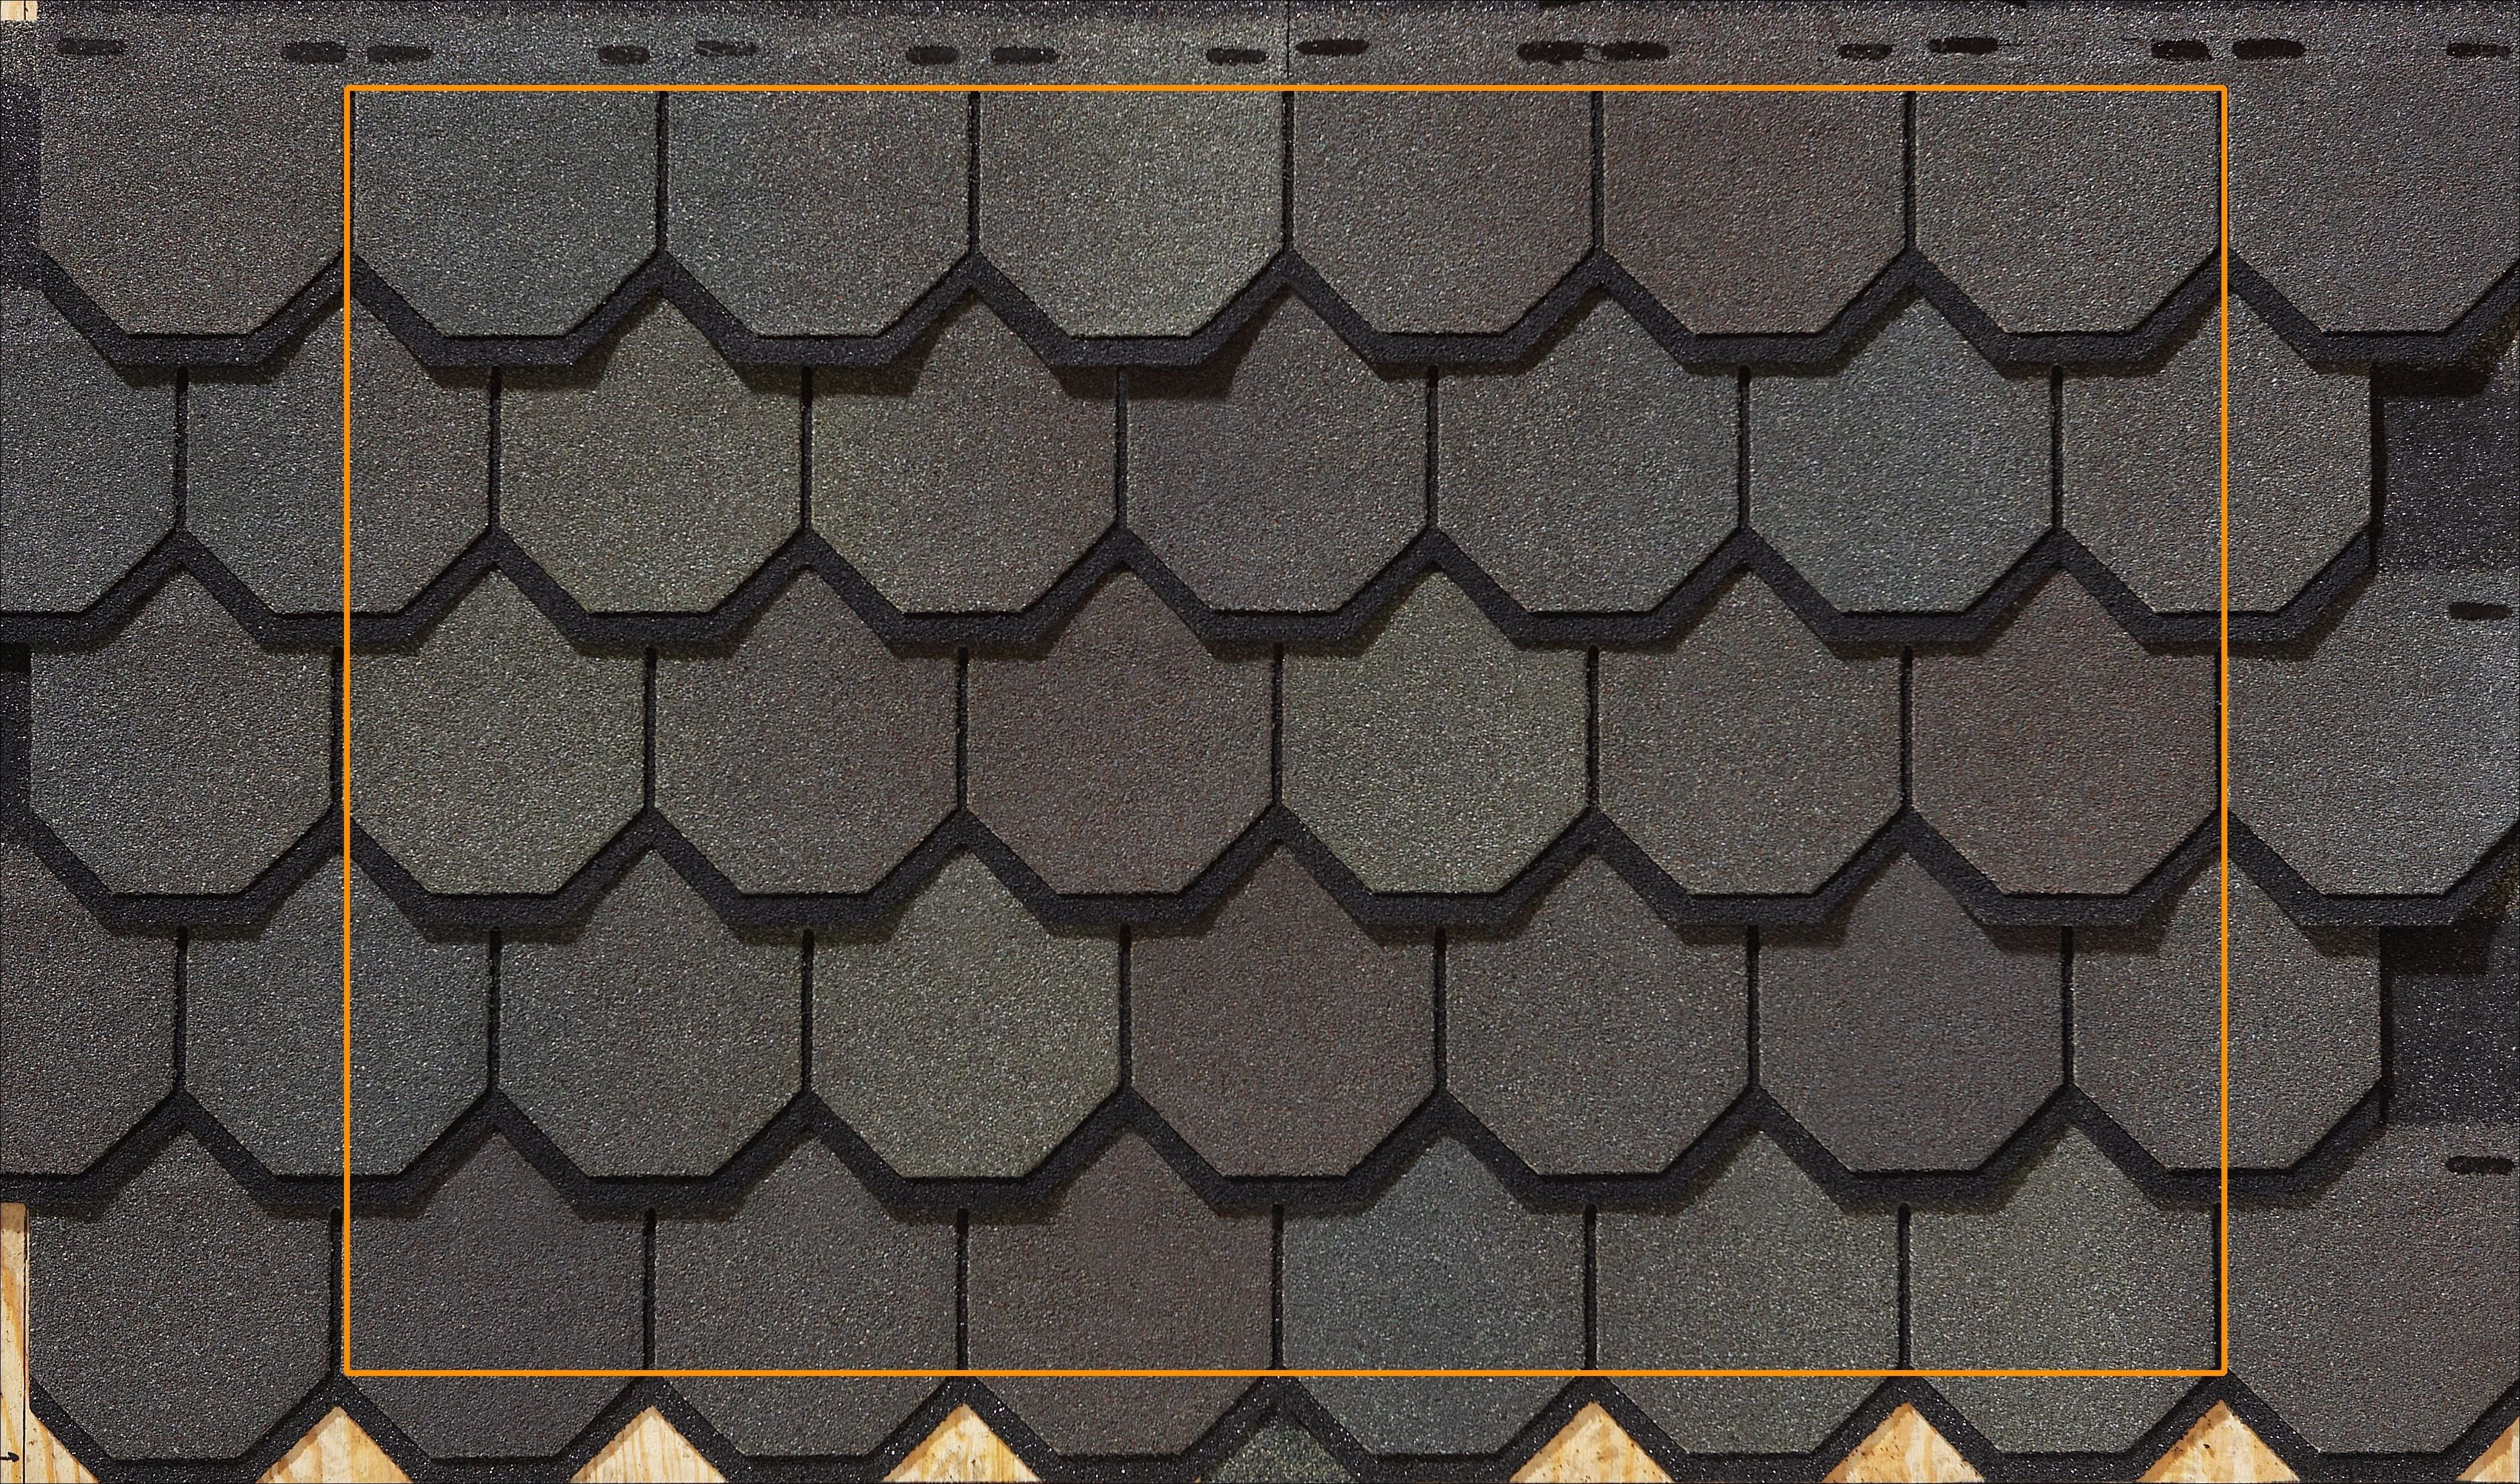 How To Choose The Right Roof Shingles Color Home Roofing Tips Shingle Colors Roof Shingle Colors Cool Roof